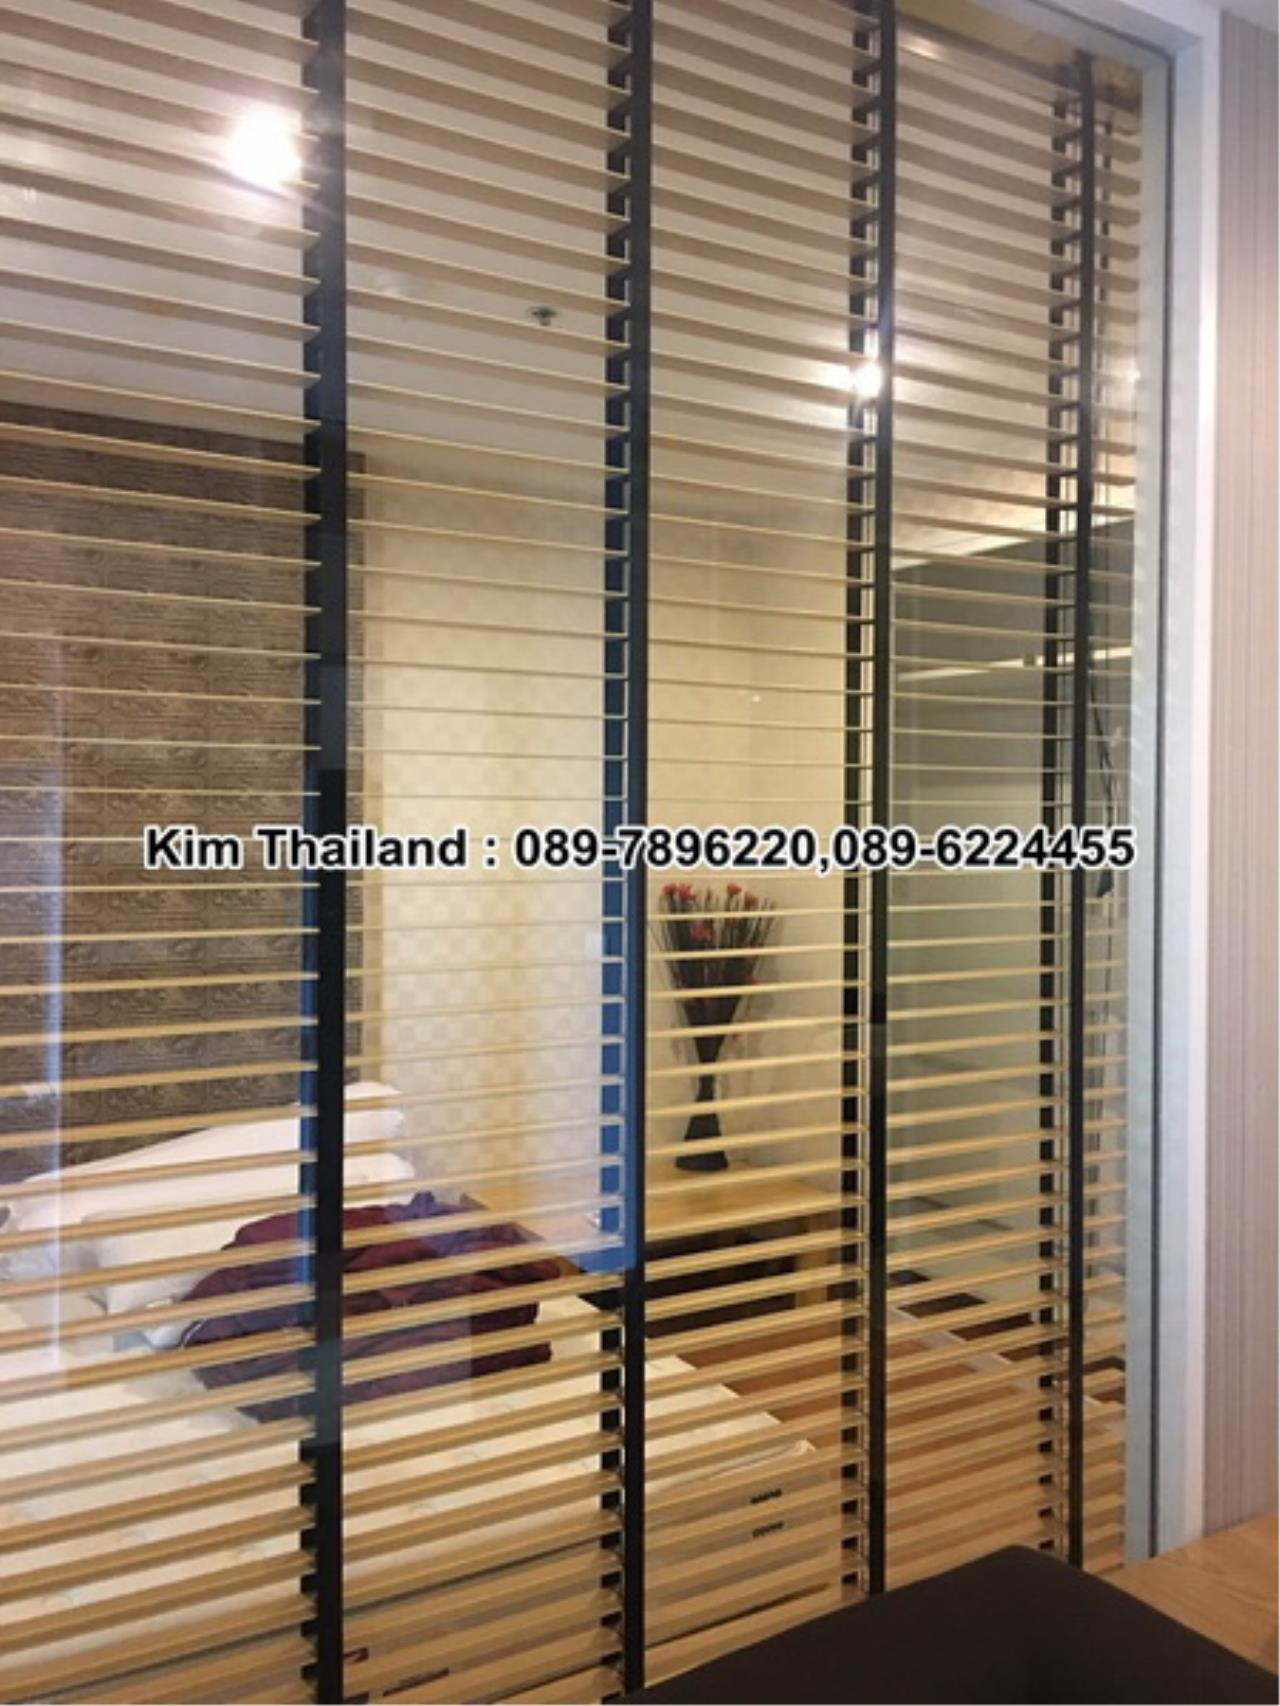 BKKcondorental Agency's For rent, Condo The Parkland Grand Asoke-Petchaburi., Area 35 sq.m. 1 bedroom. Rental 16,500 THB per month. 8